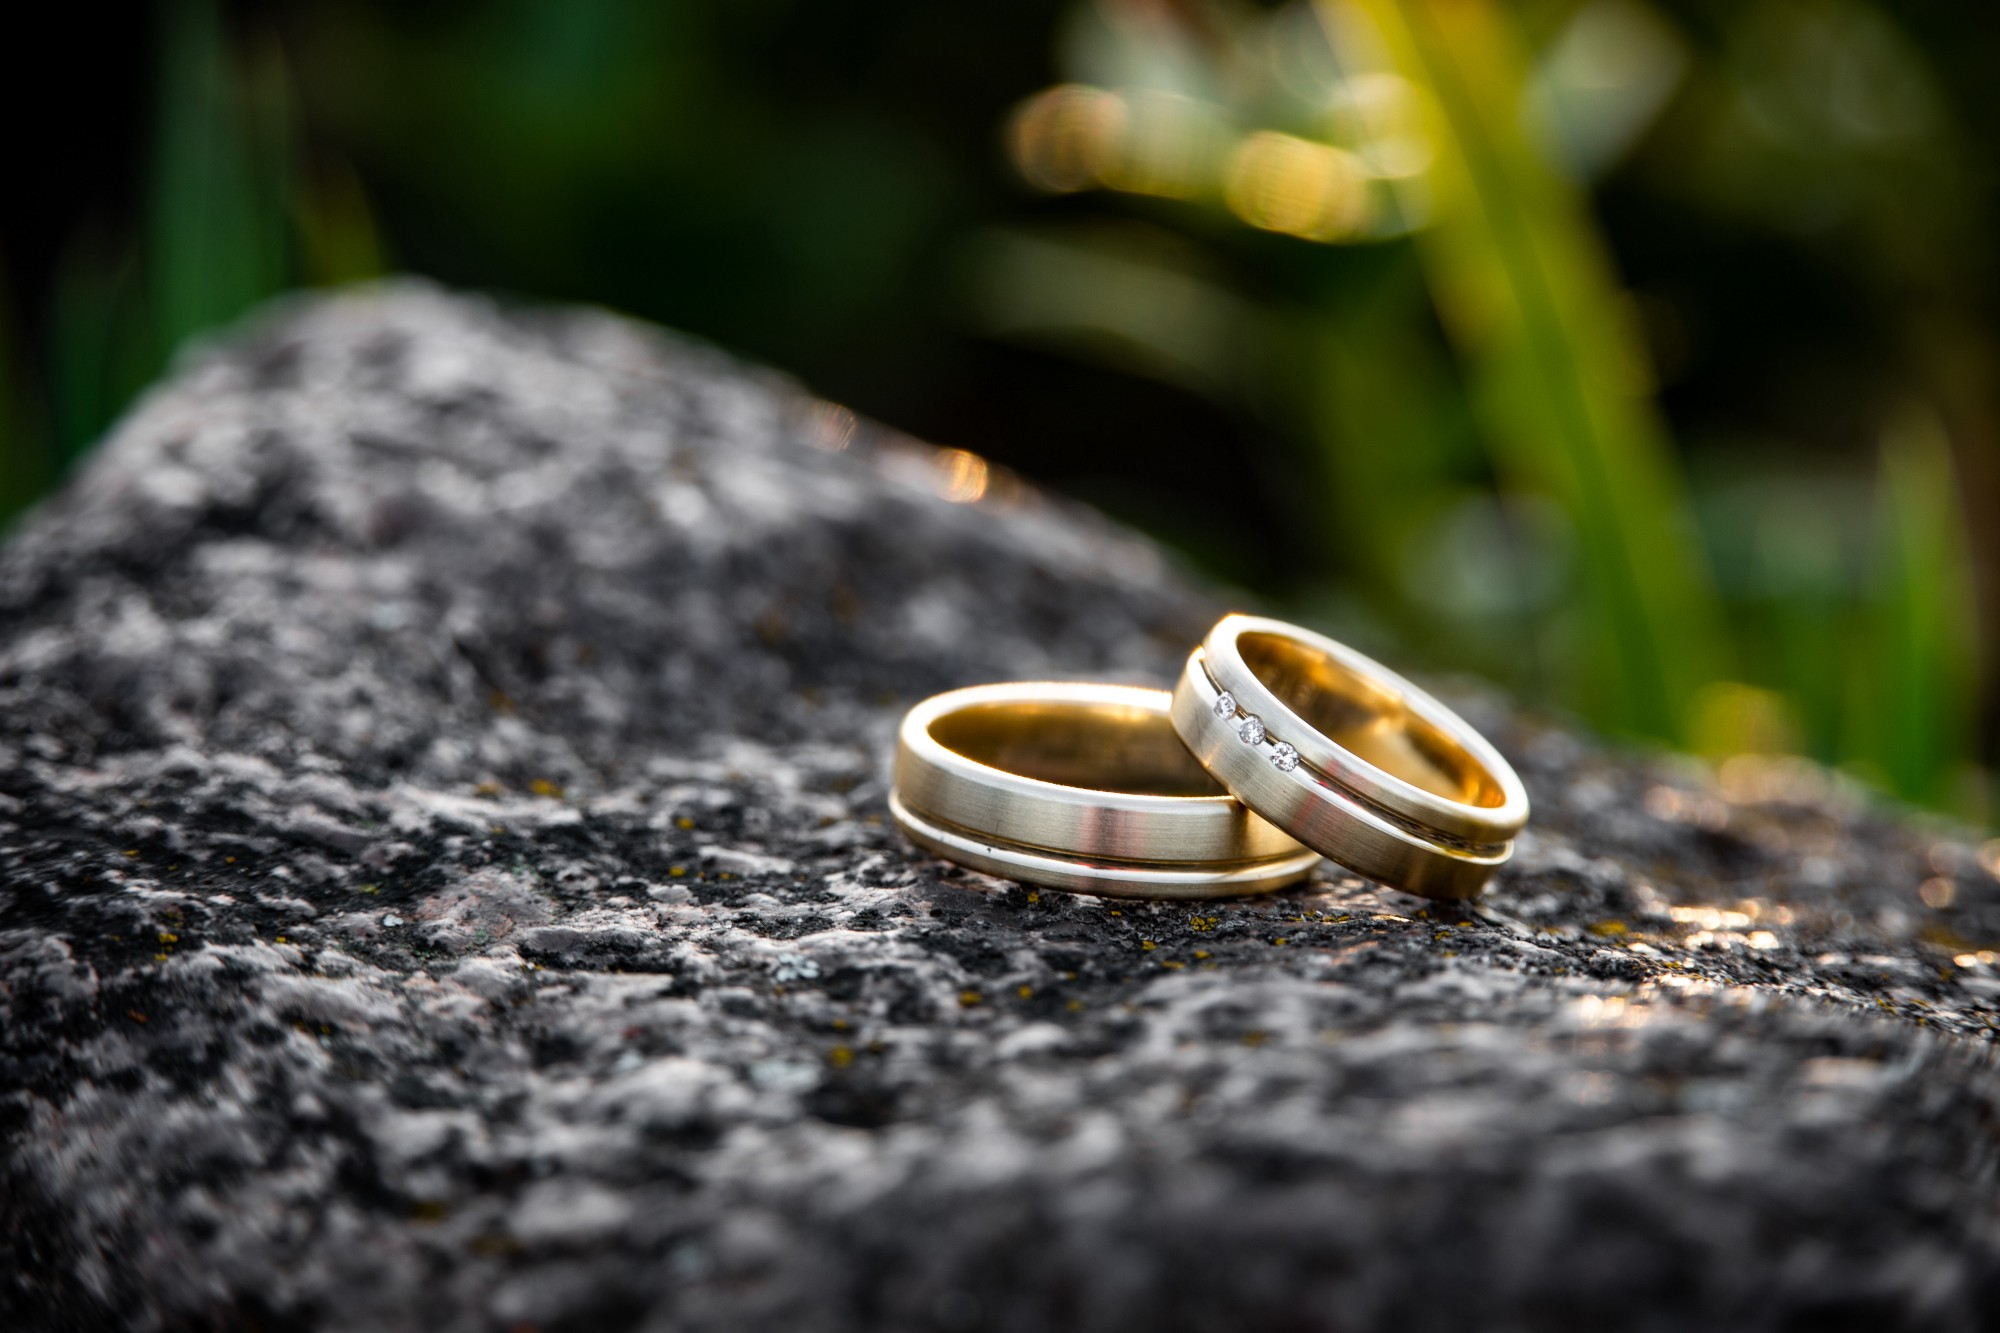 A pair of gold wedding rings, placed artistically on a log